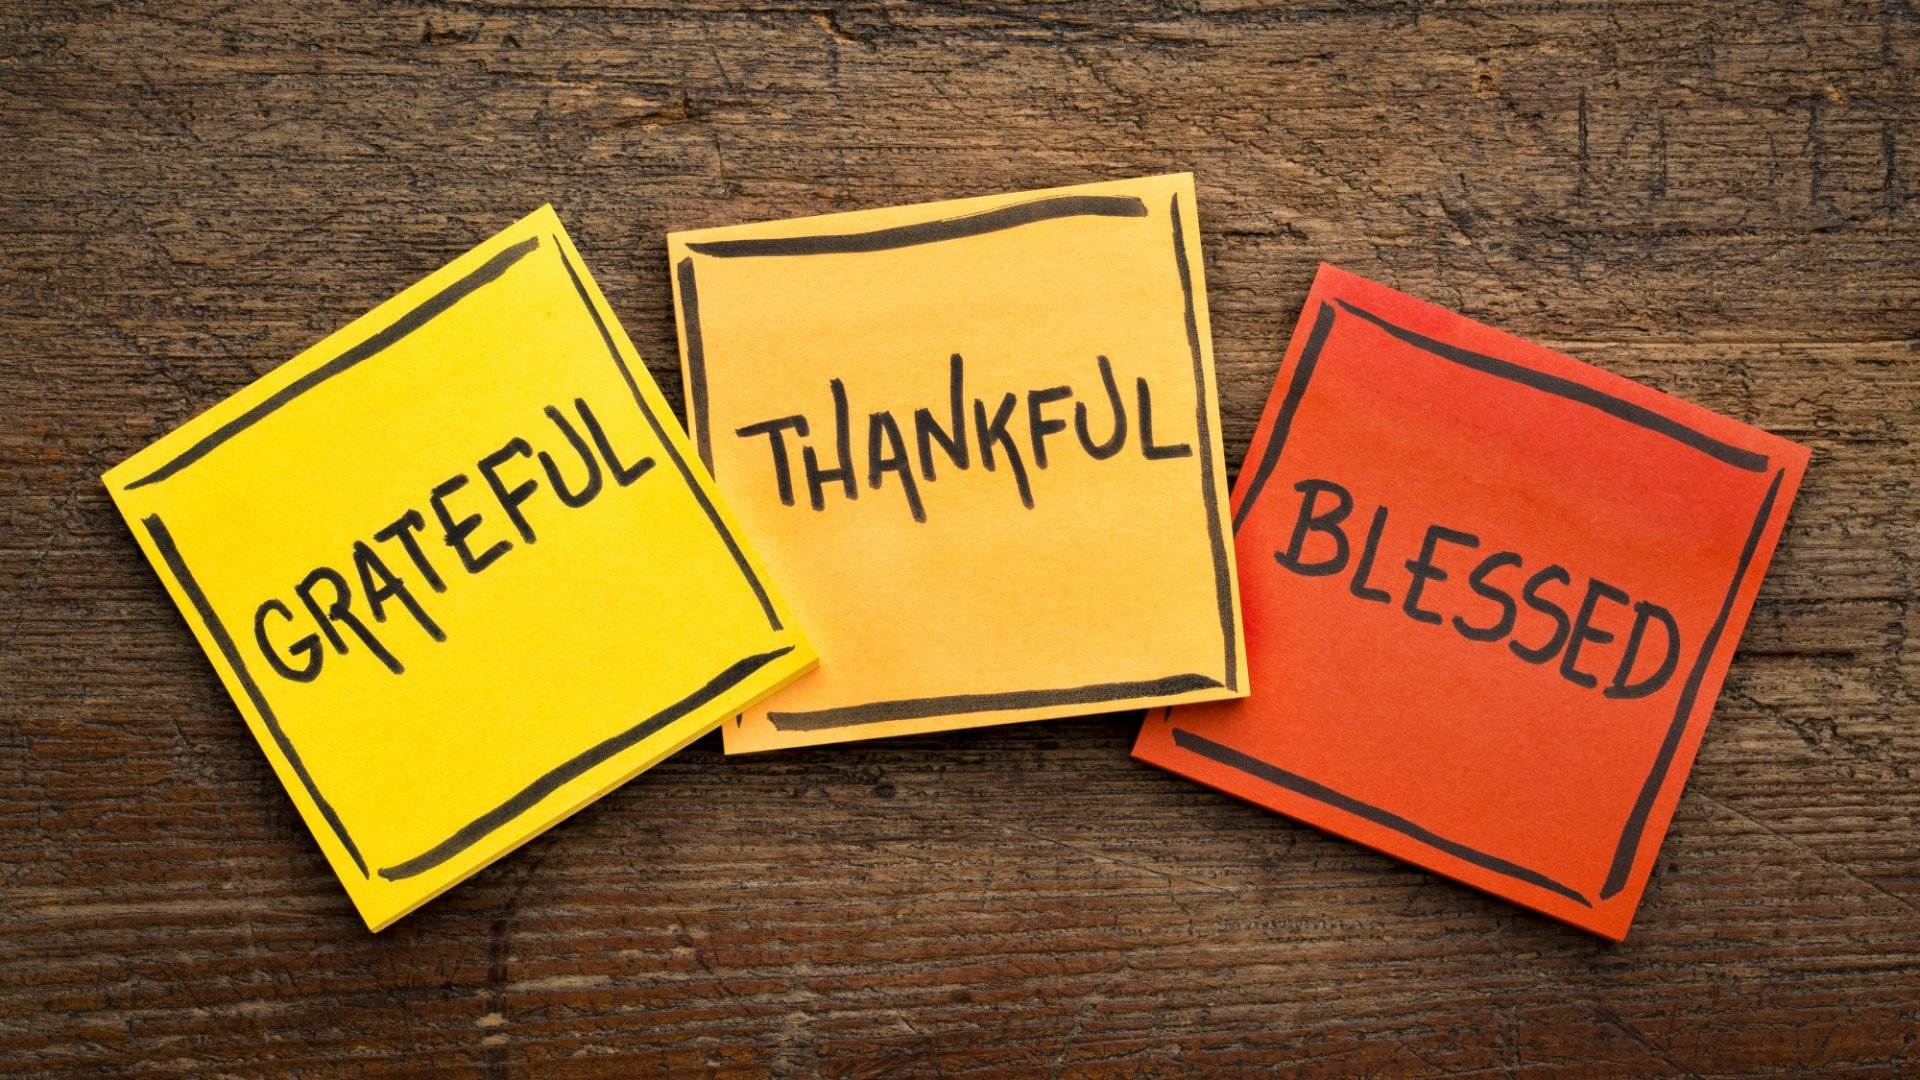 You are currently viewing Our Dec 31st Gratitude Lunch